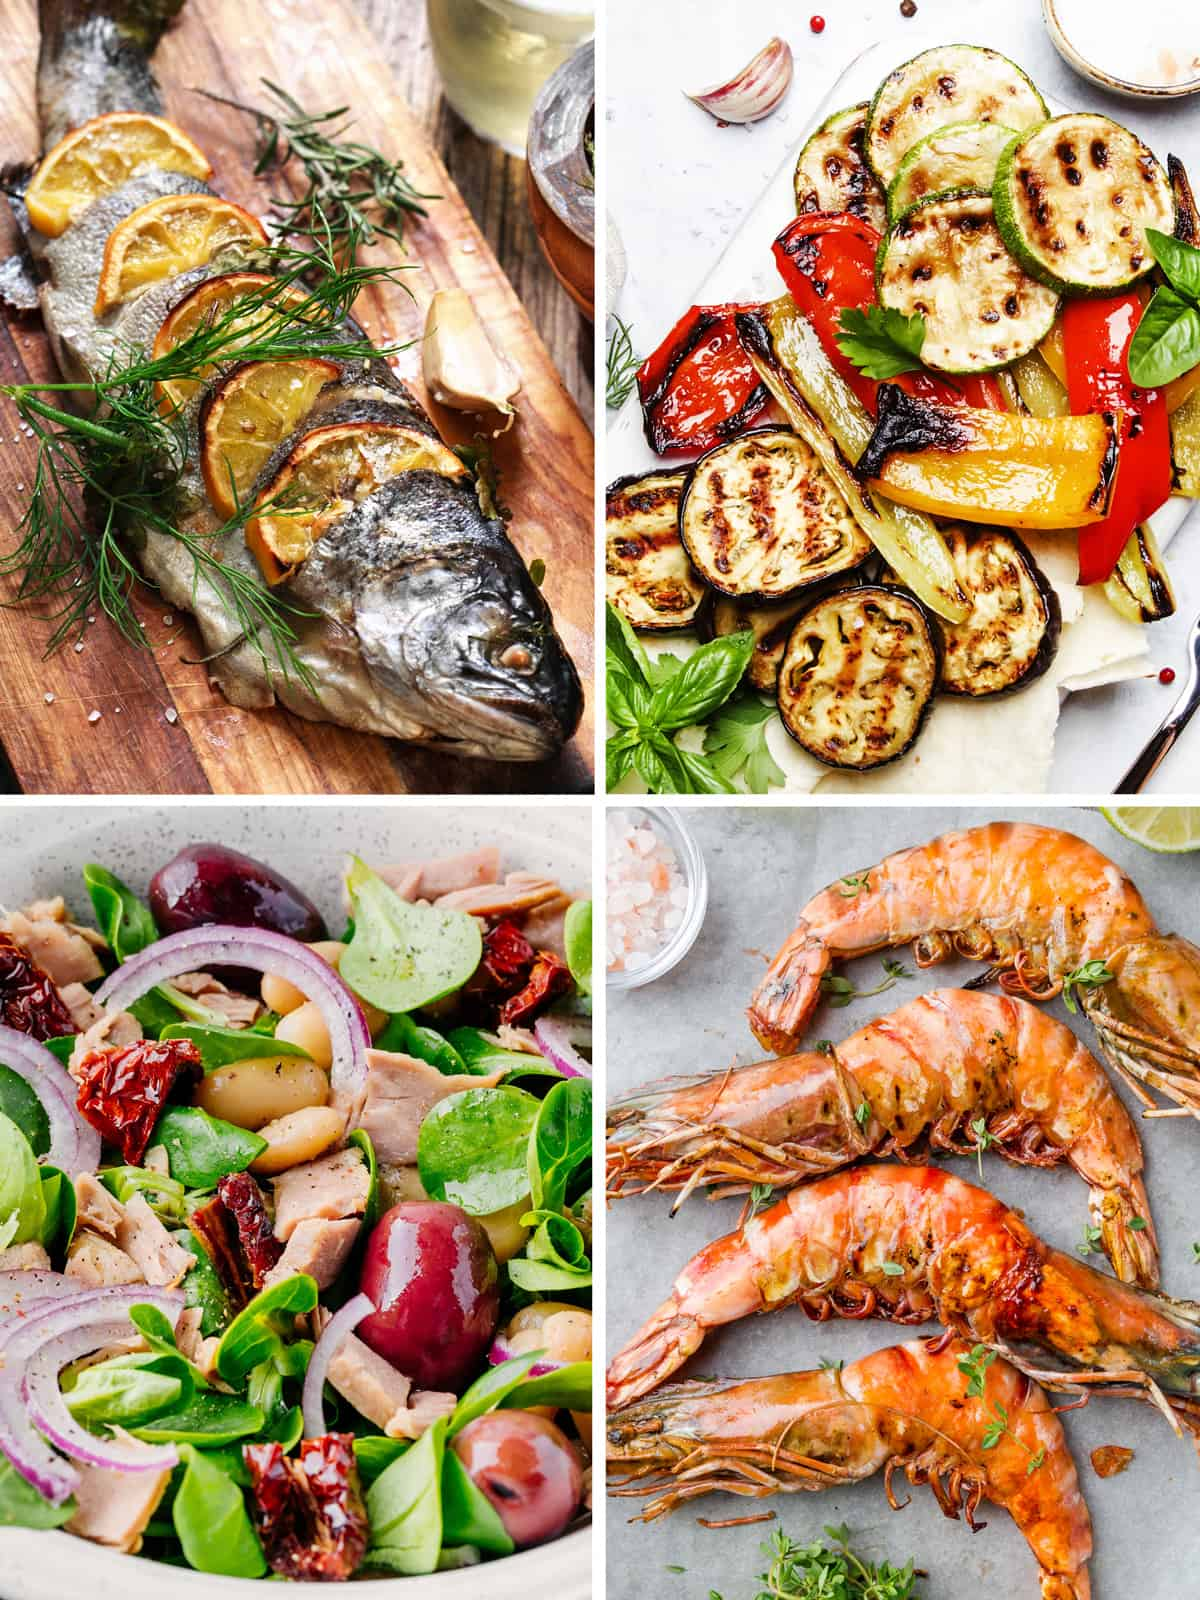 Four images. A whole grilled fish on a wooden board with herbs. Grilled vegetables on a white plate. A bean salad with tuna and olives. Three big grilled shrimp and a bowl with salt.